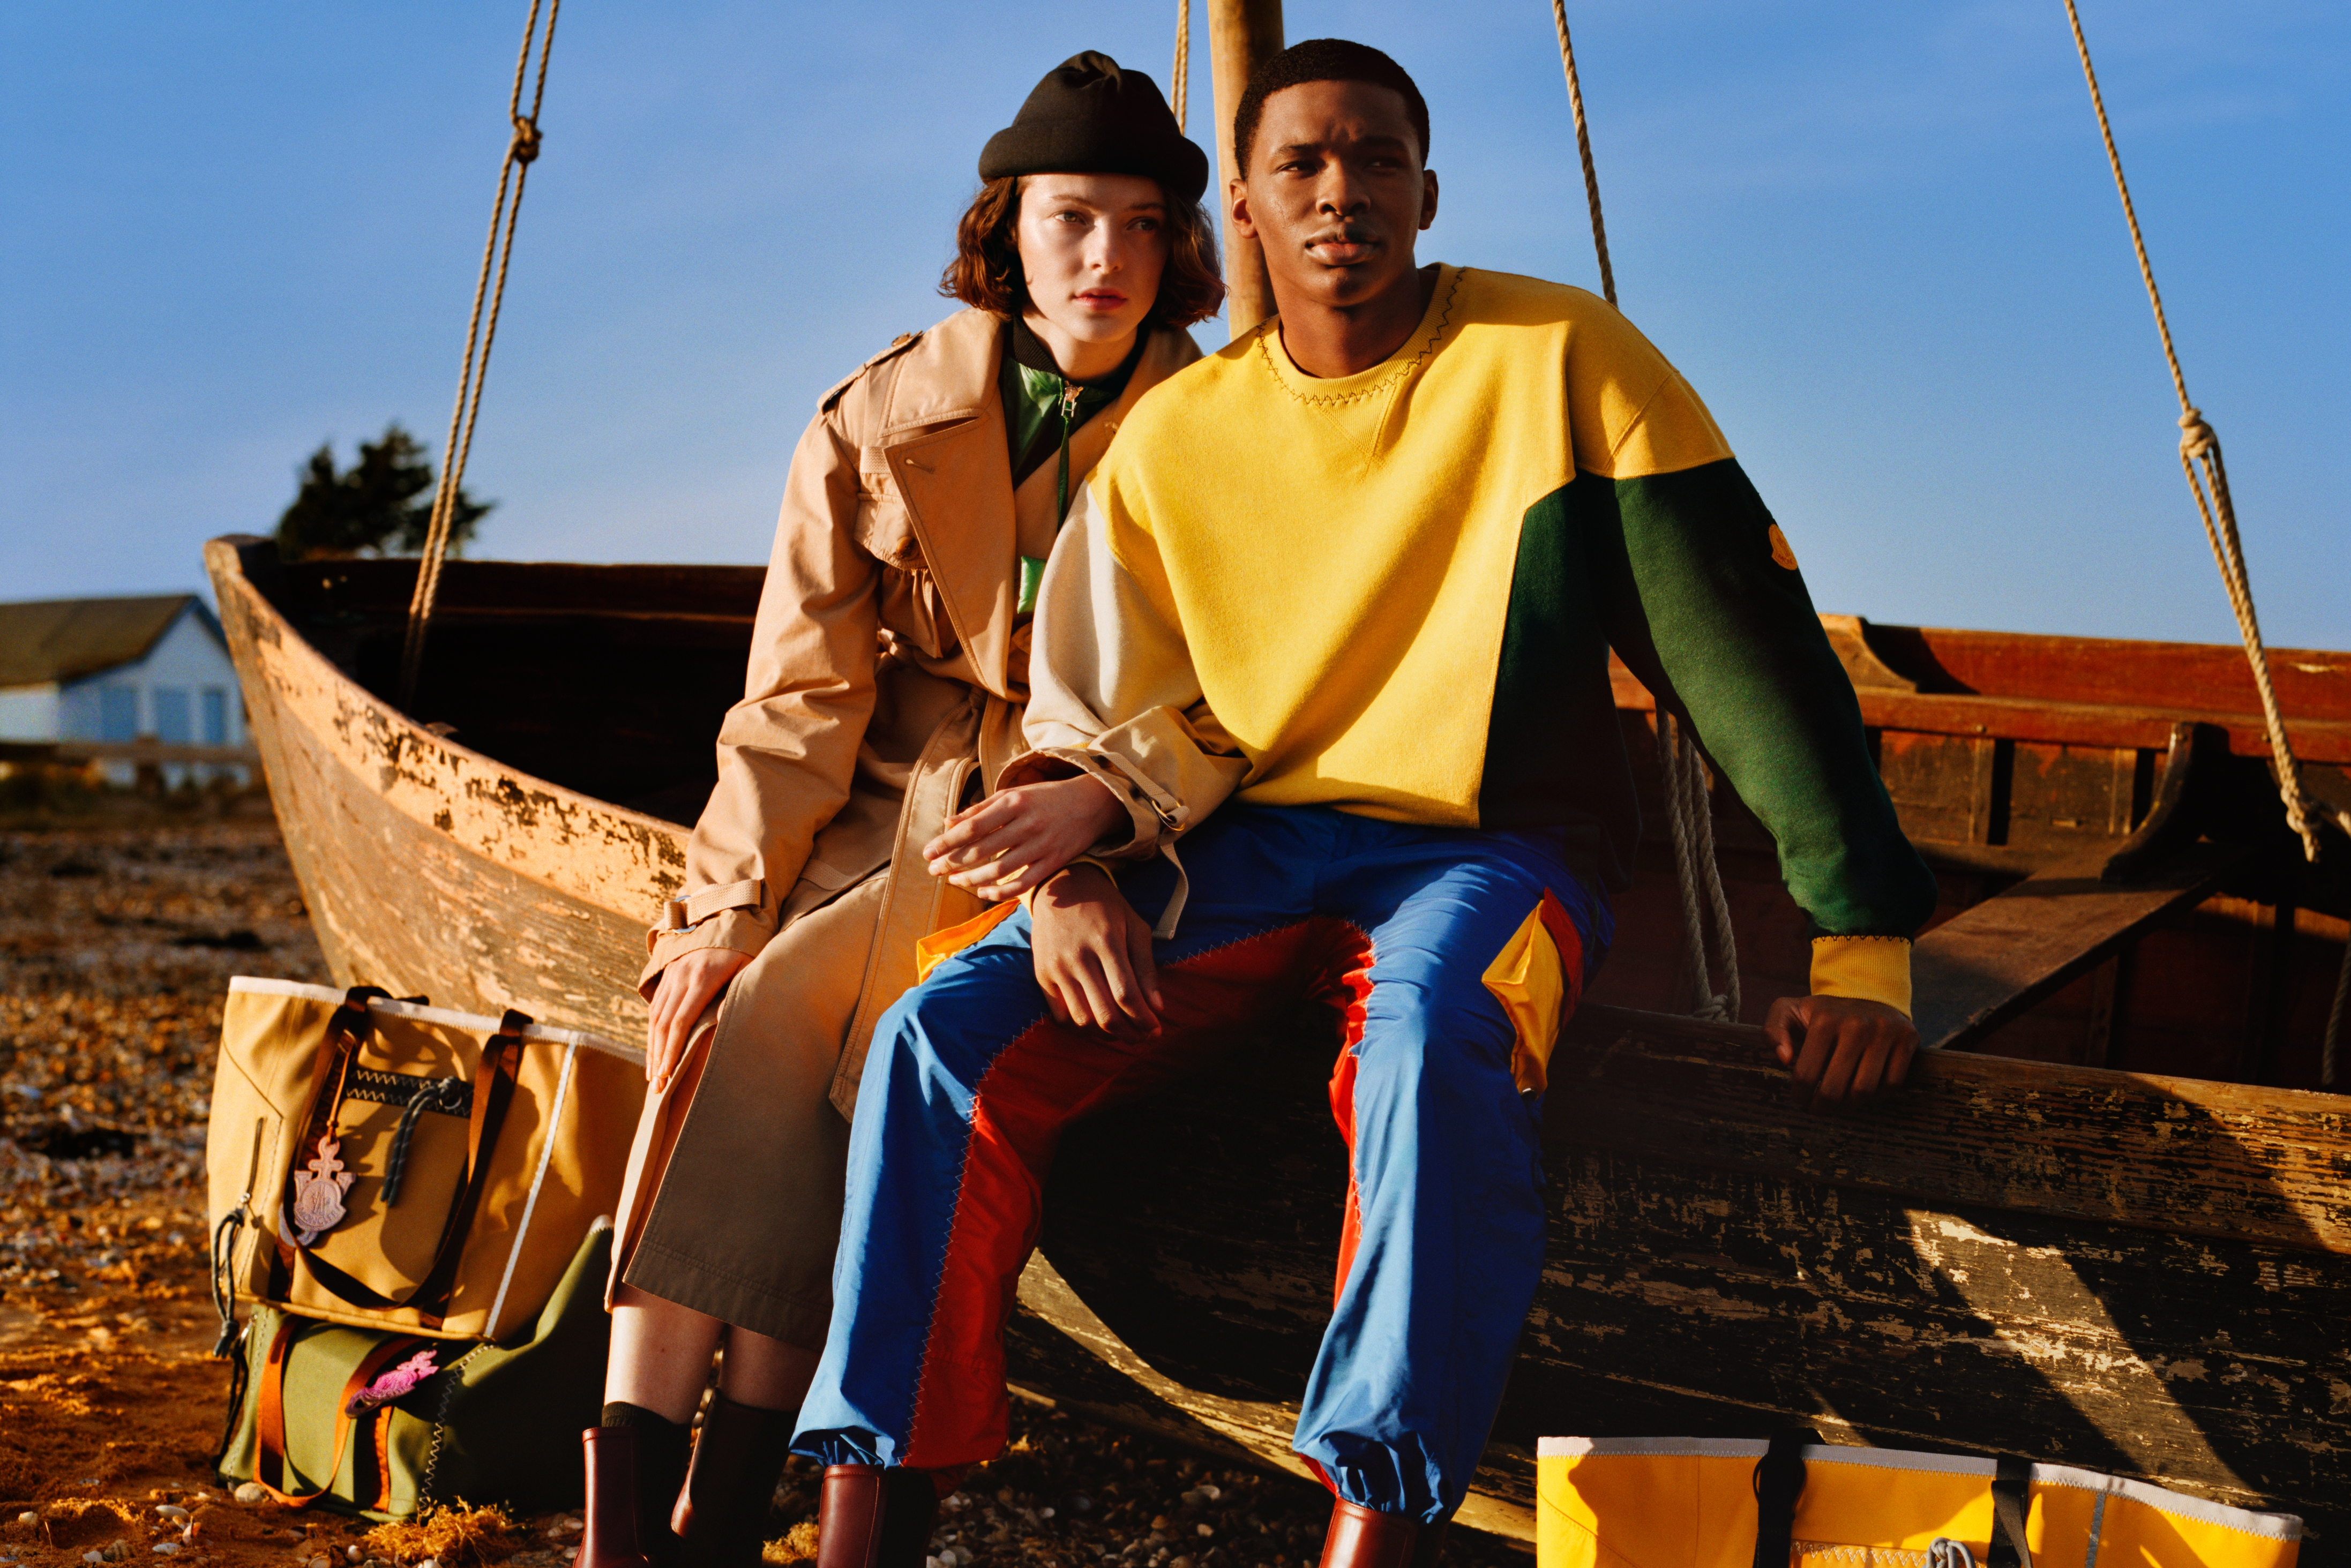 Moncler Genius JW Anderson spring collection